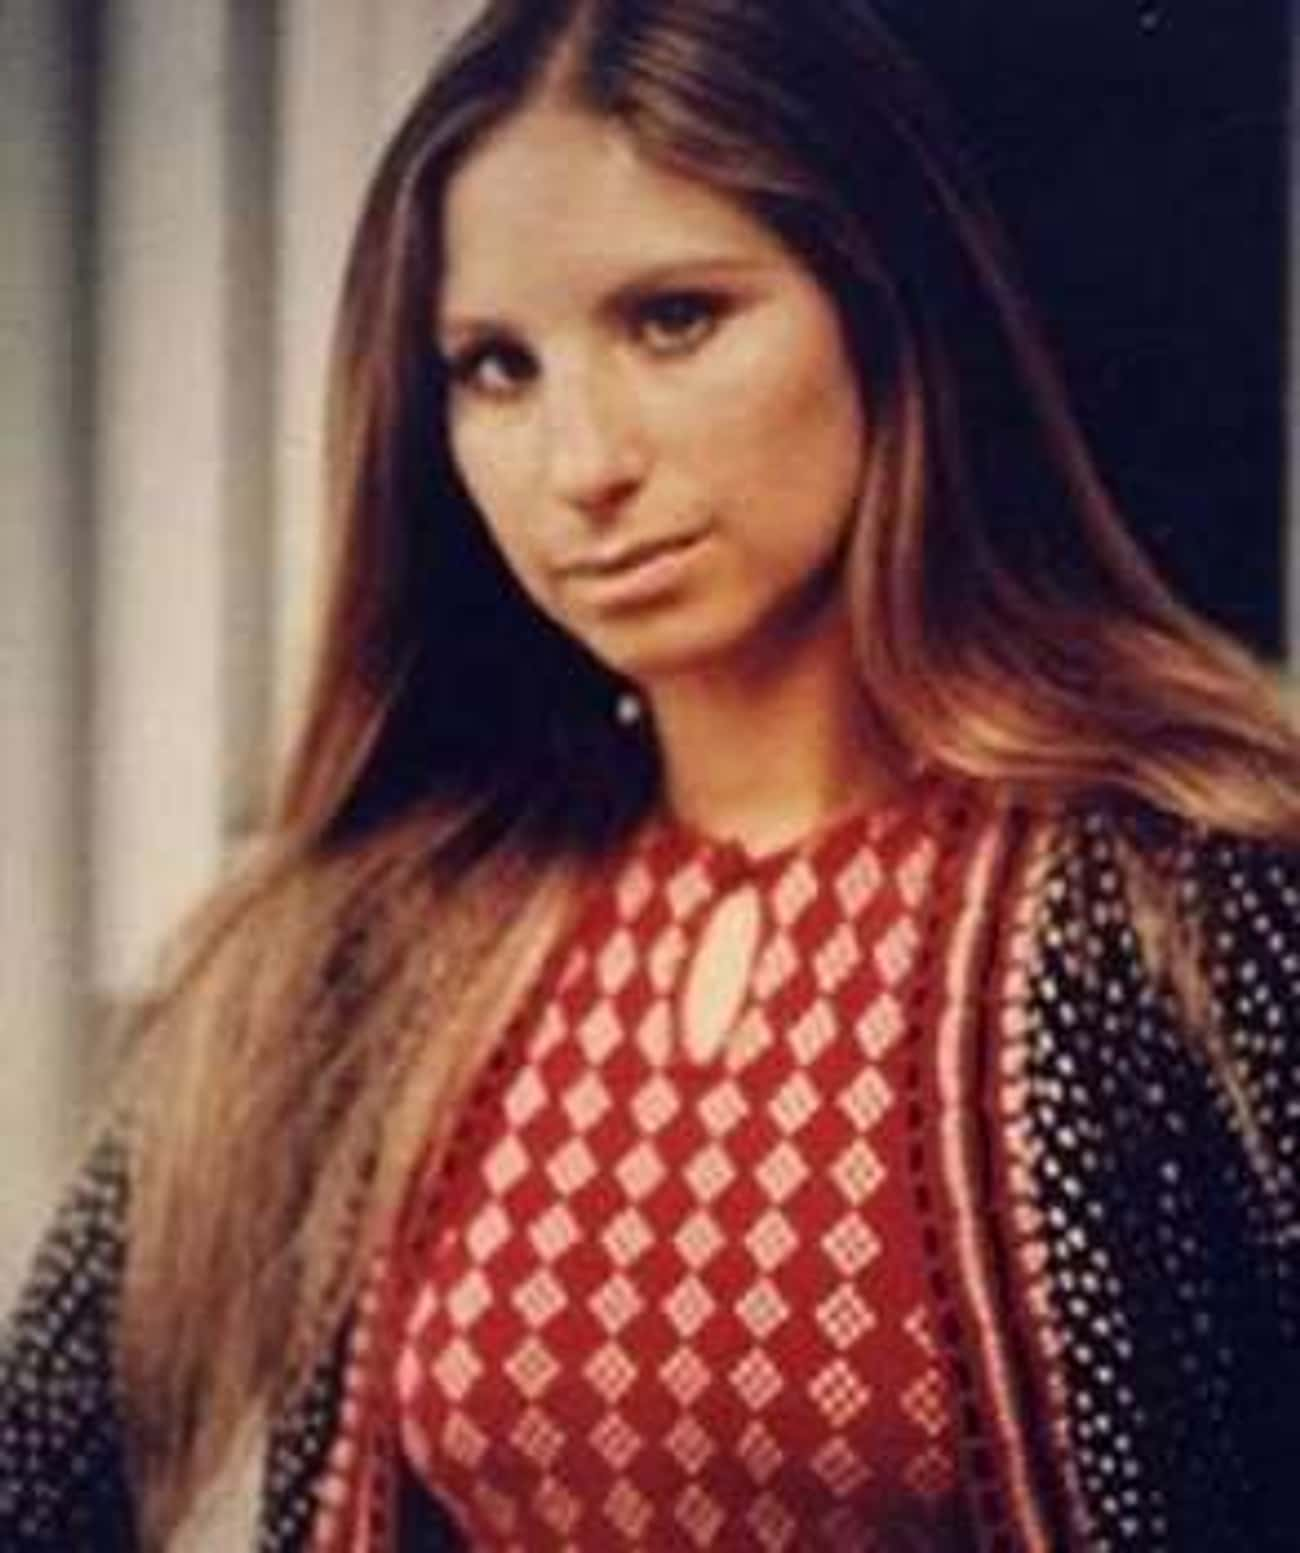 Young Barbra Streisand in Red  is listed (or ranked) 4 on the list 20 Pictures of Young Barbra Streisand